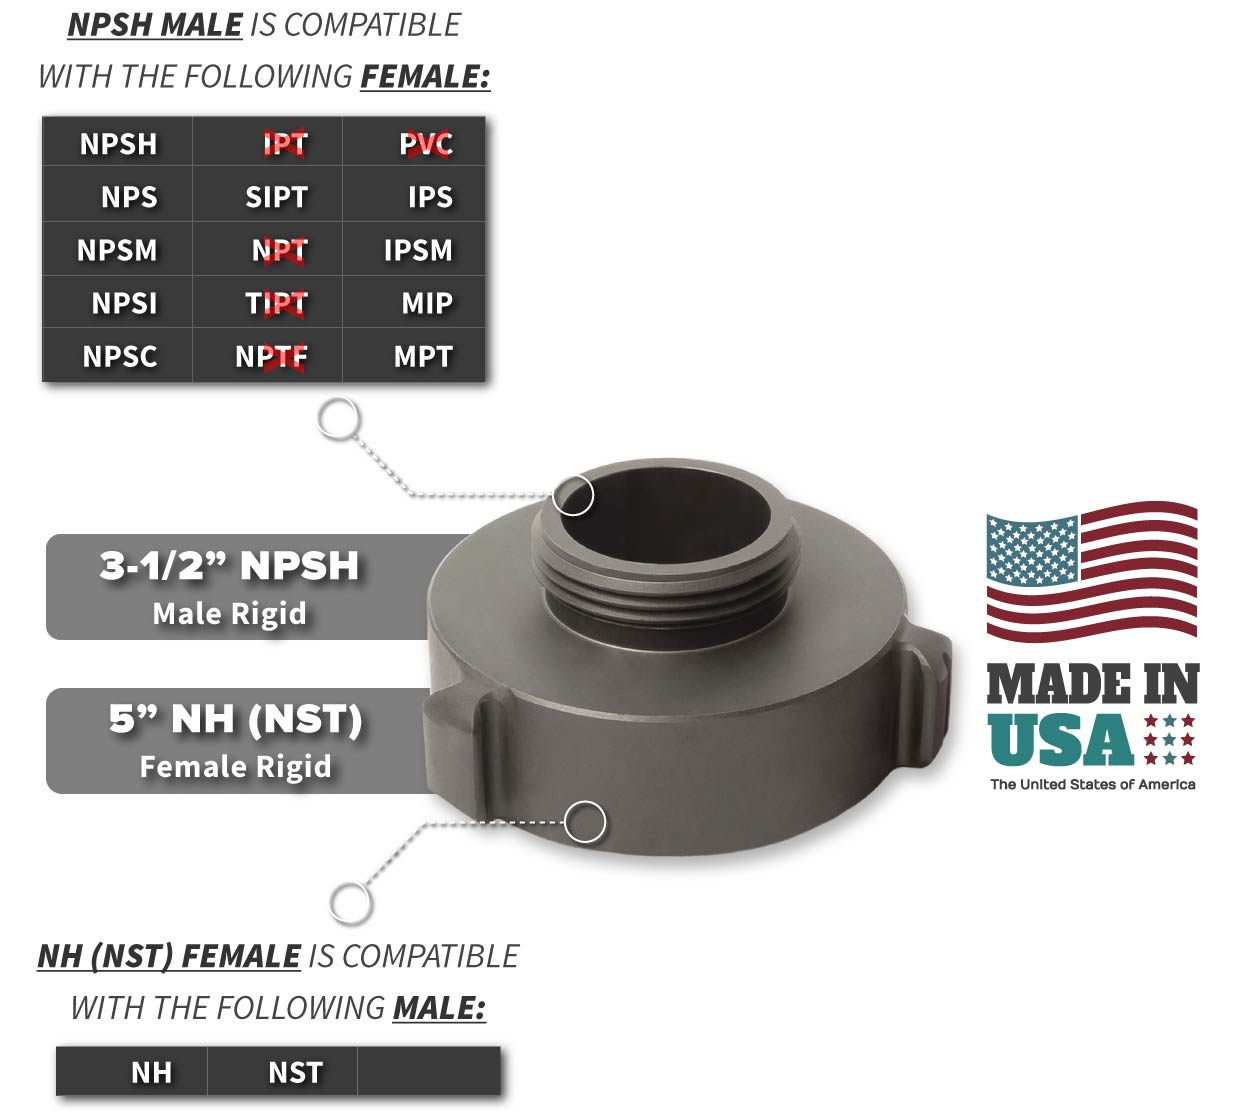 5 Inch NH-NST Female x 3.5 Inch NPSH Male Compatibility Thread Chart